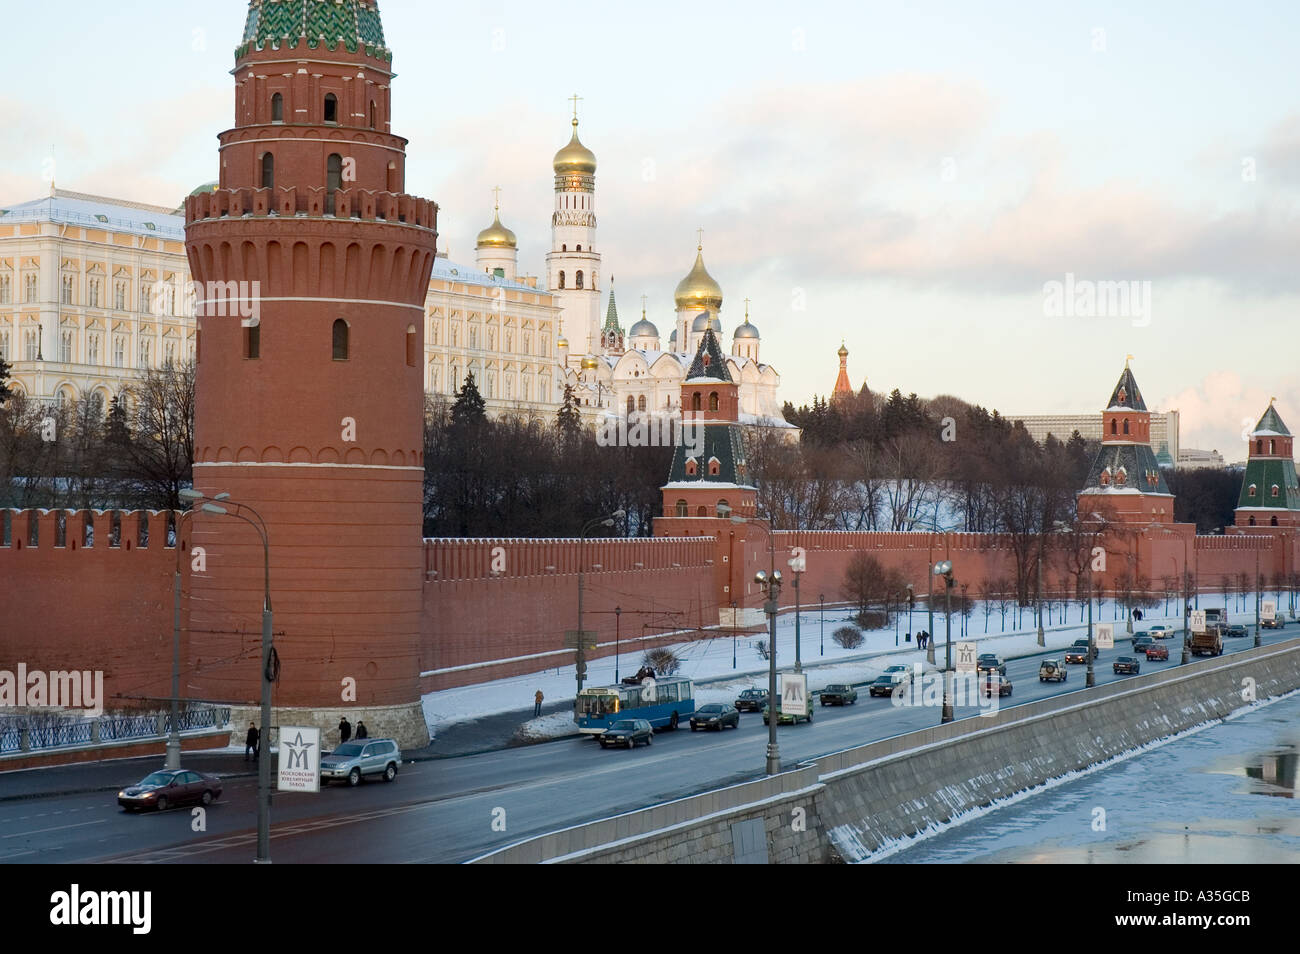 The Great Kremlin Palace and its wall in central Moscow - Stock Image